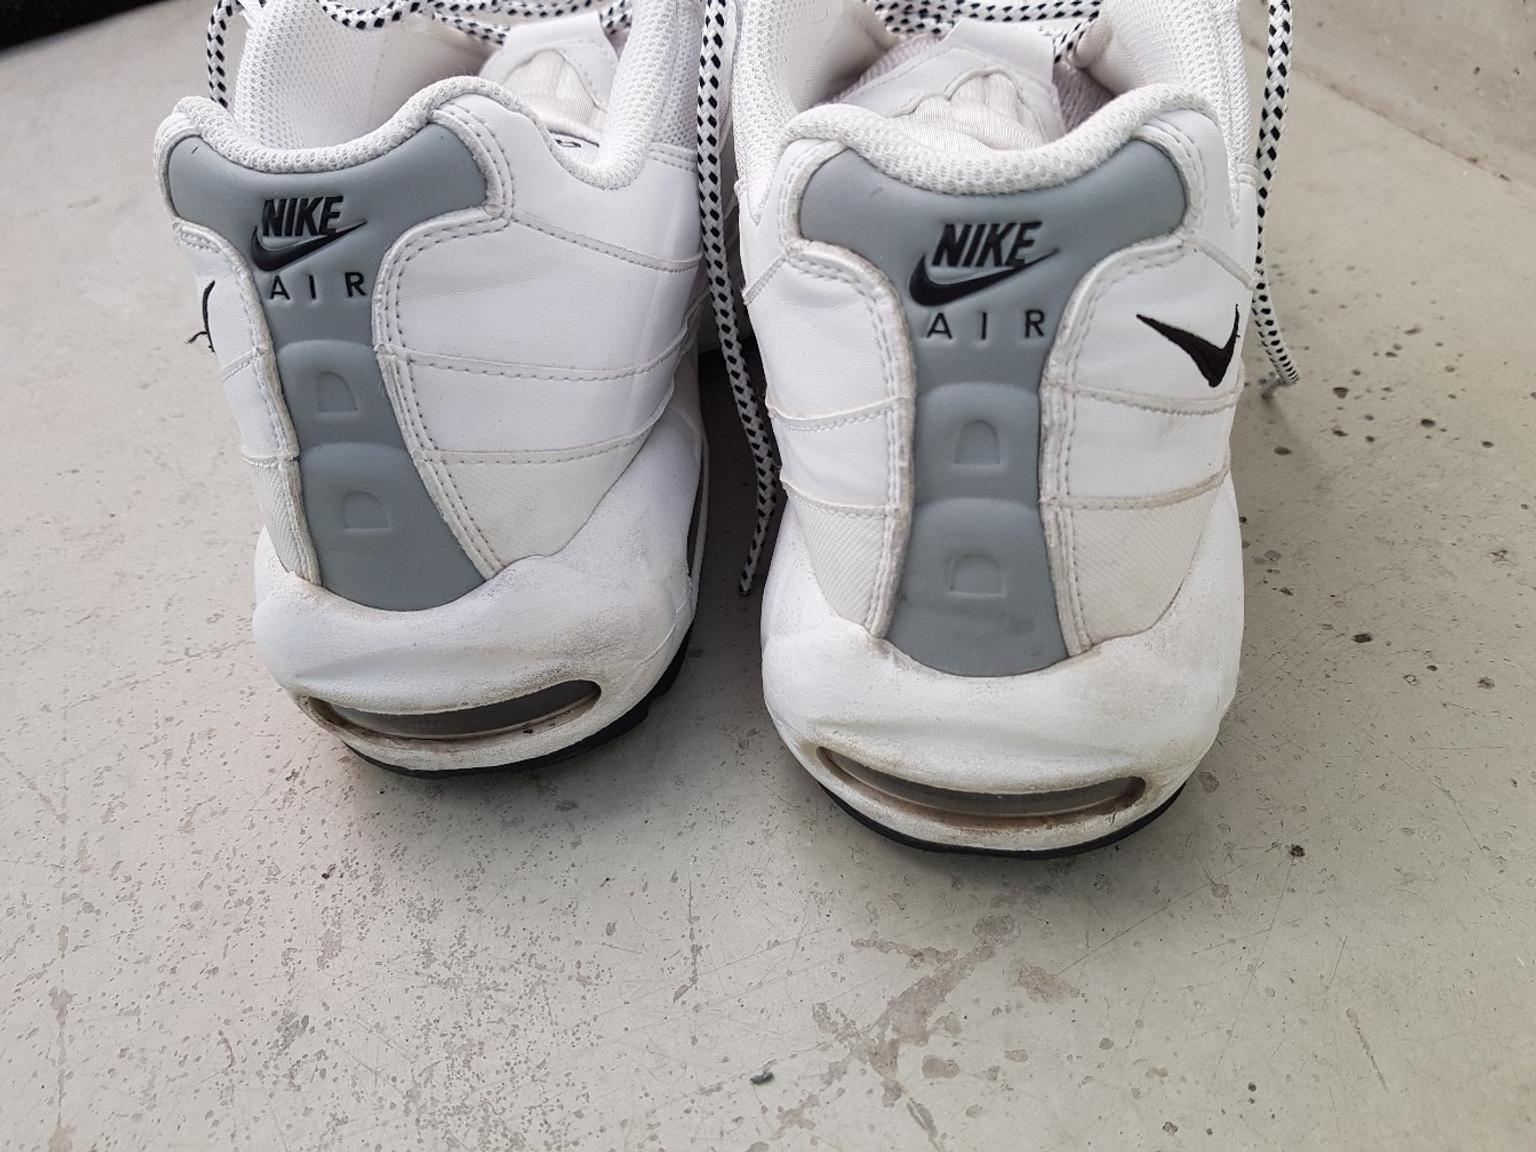 Nike Air Max 95 in 80939 München for €35.00 for sale | Shpock